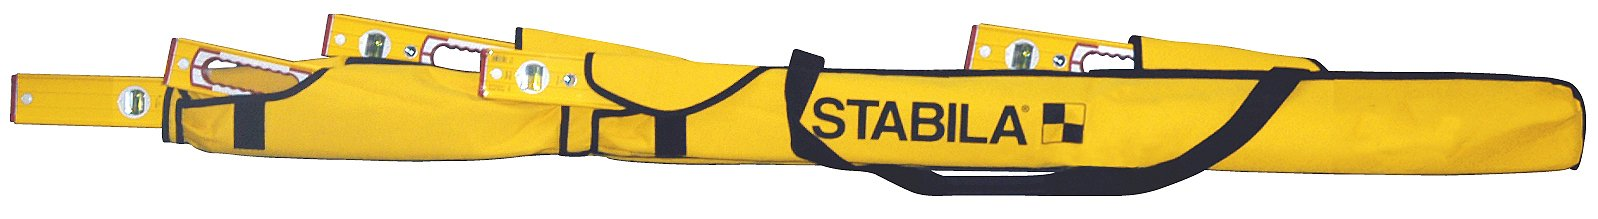 Stabila 30025 Carrying Case Holds 78'', 59'', 32'', 24'', 16'' and Torpedo